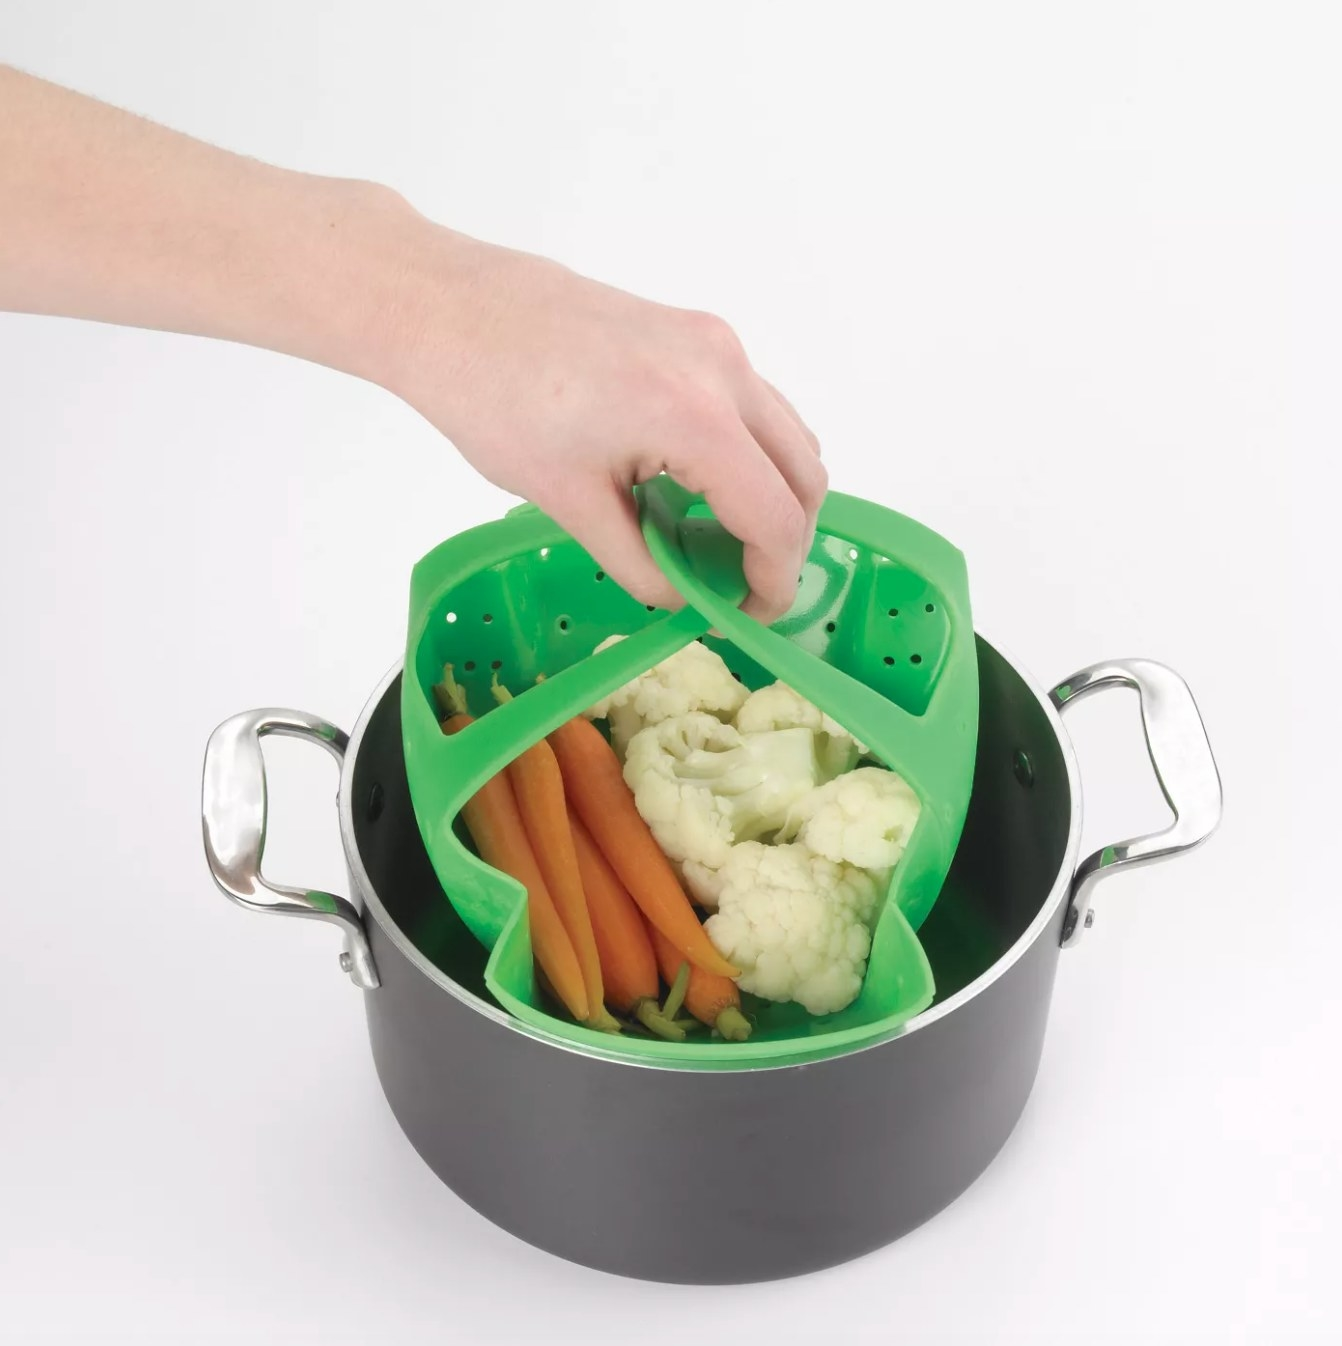 The silicone pressure cooker steamer in green with handles